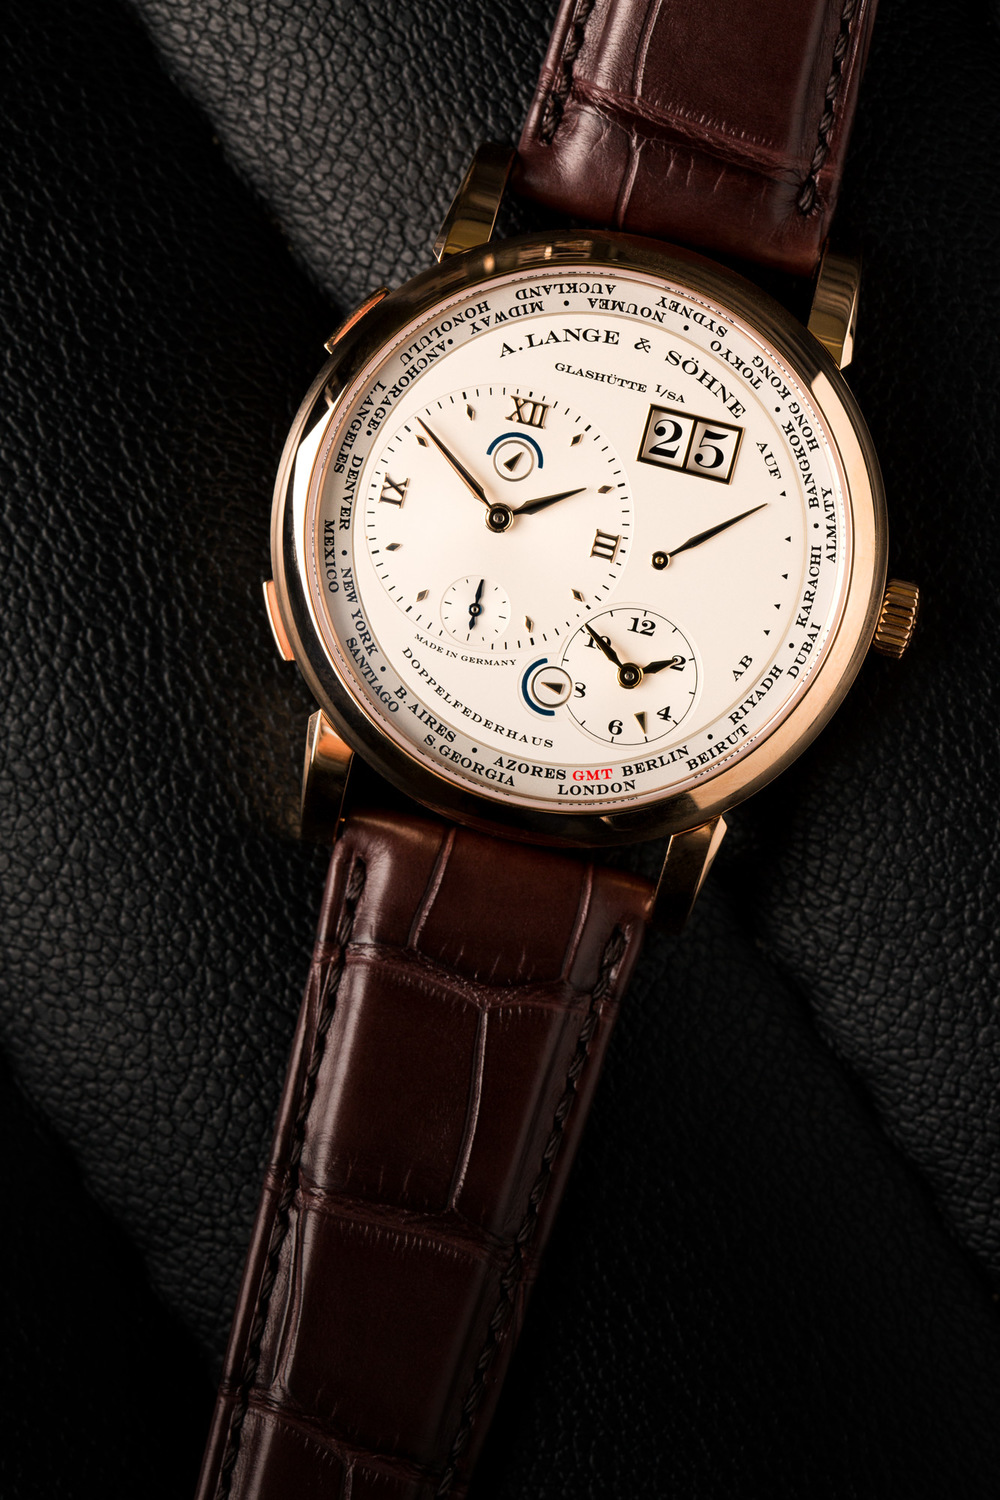 Product-Photography-18.jpg